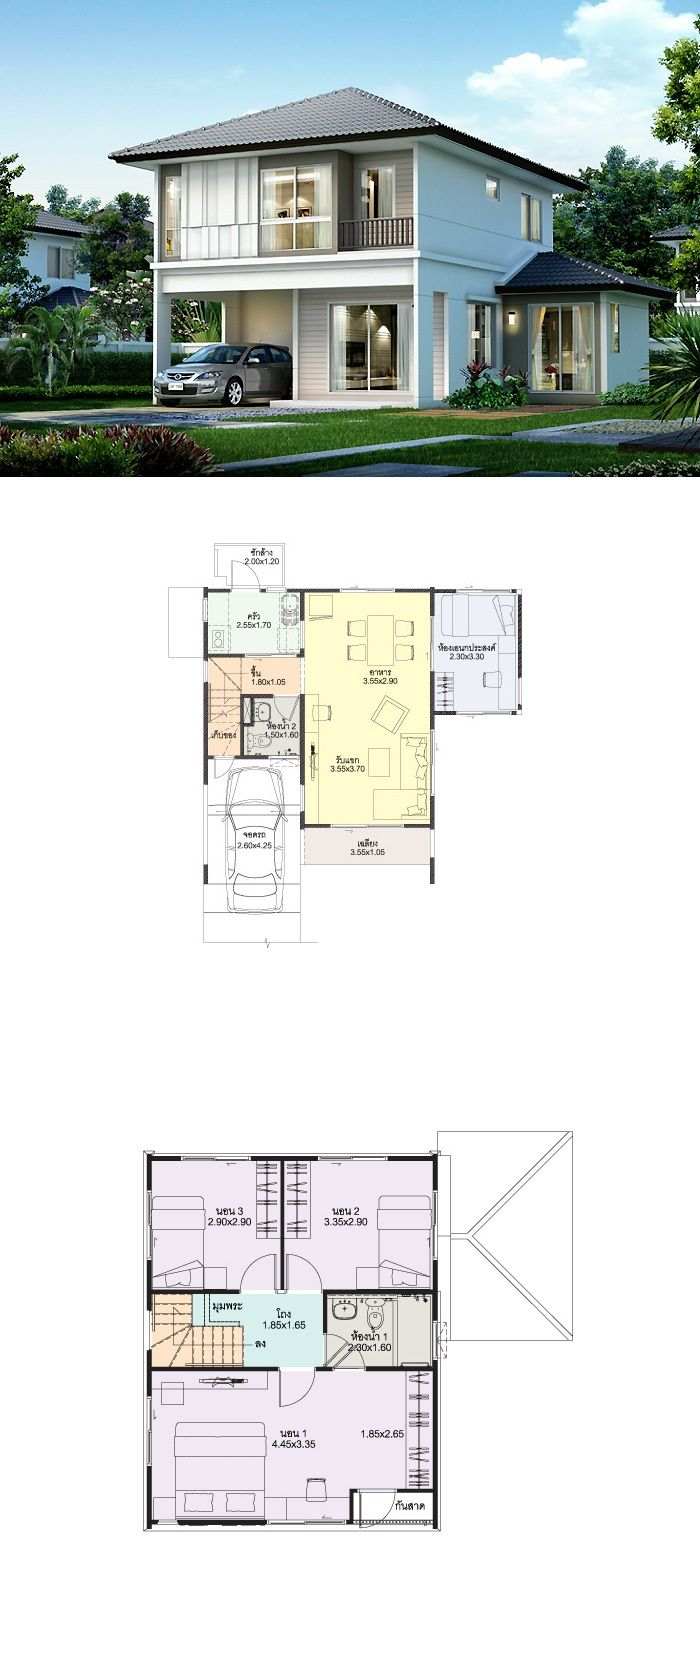 Land and houses thai house design rumah models 2 story houses architecture